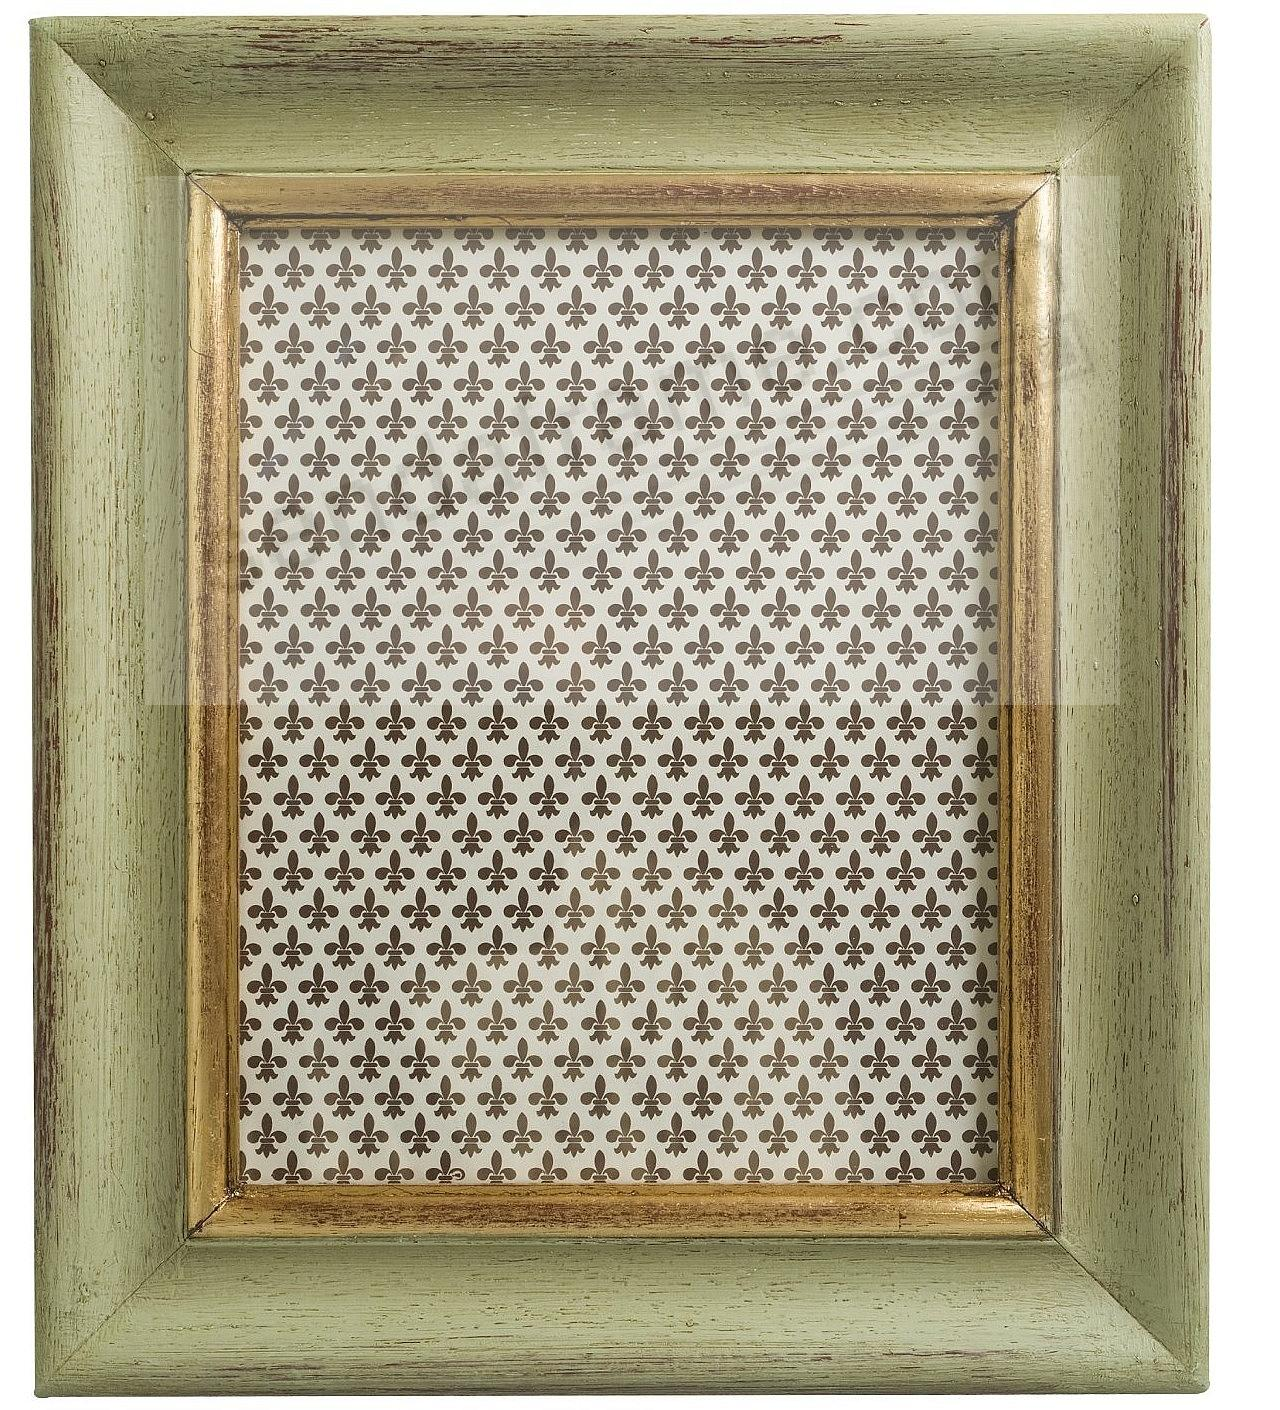 Antique sage green and gold carved wood 5x7 frame by eccolo antique sage green and gold carved wood 5x7 frame by eccolo jeuxipadfo Image collections